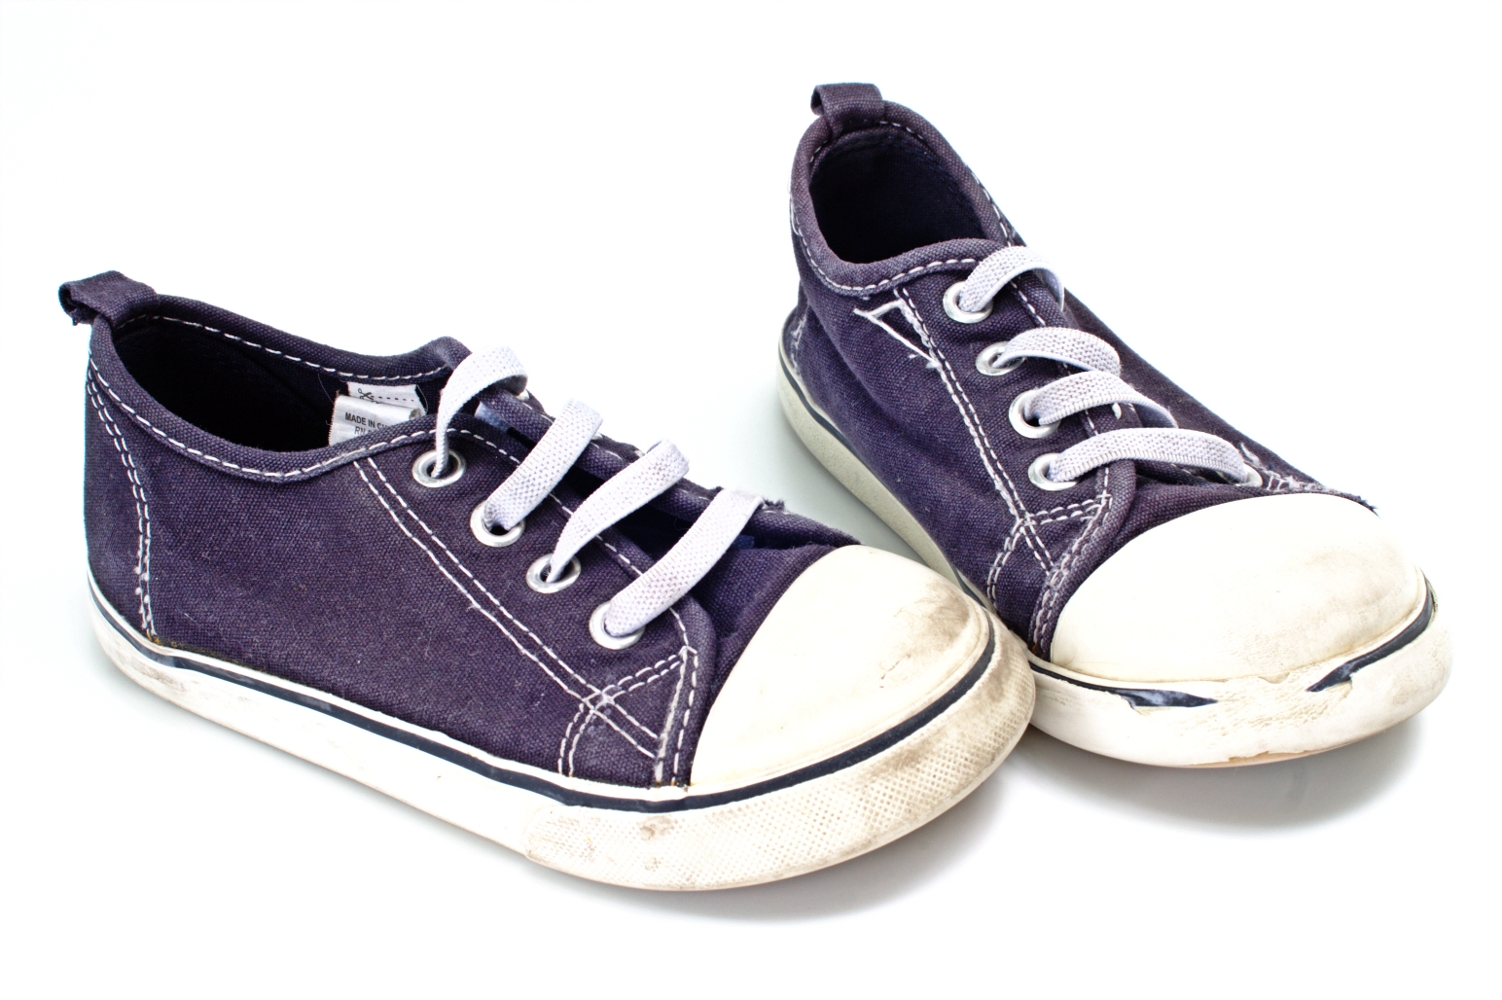 Pair of blue and white sneakers photo